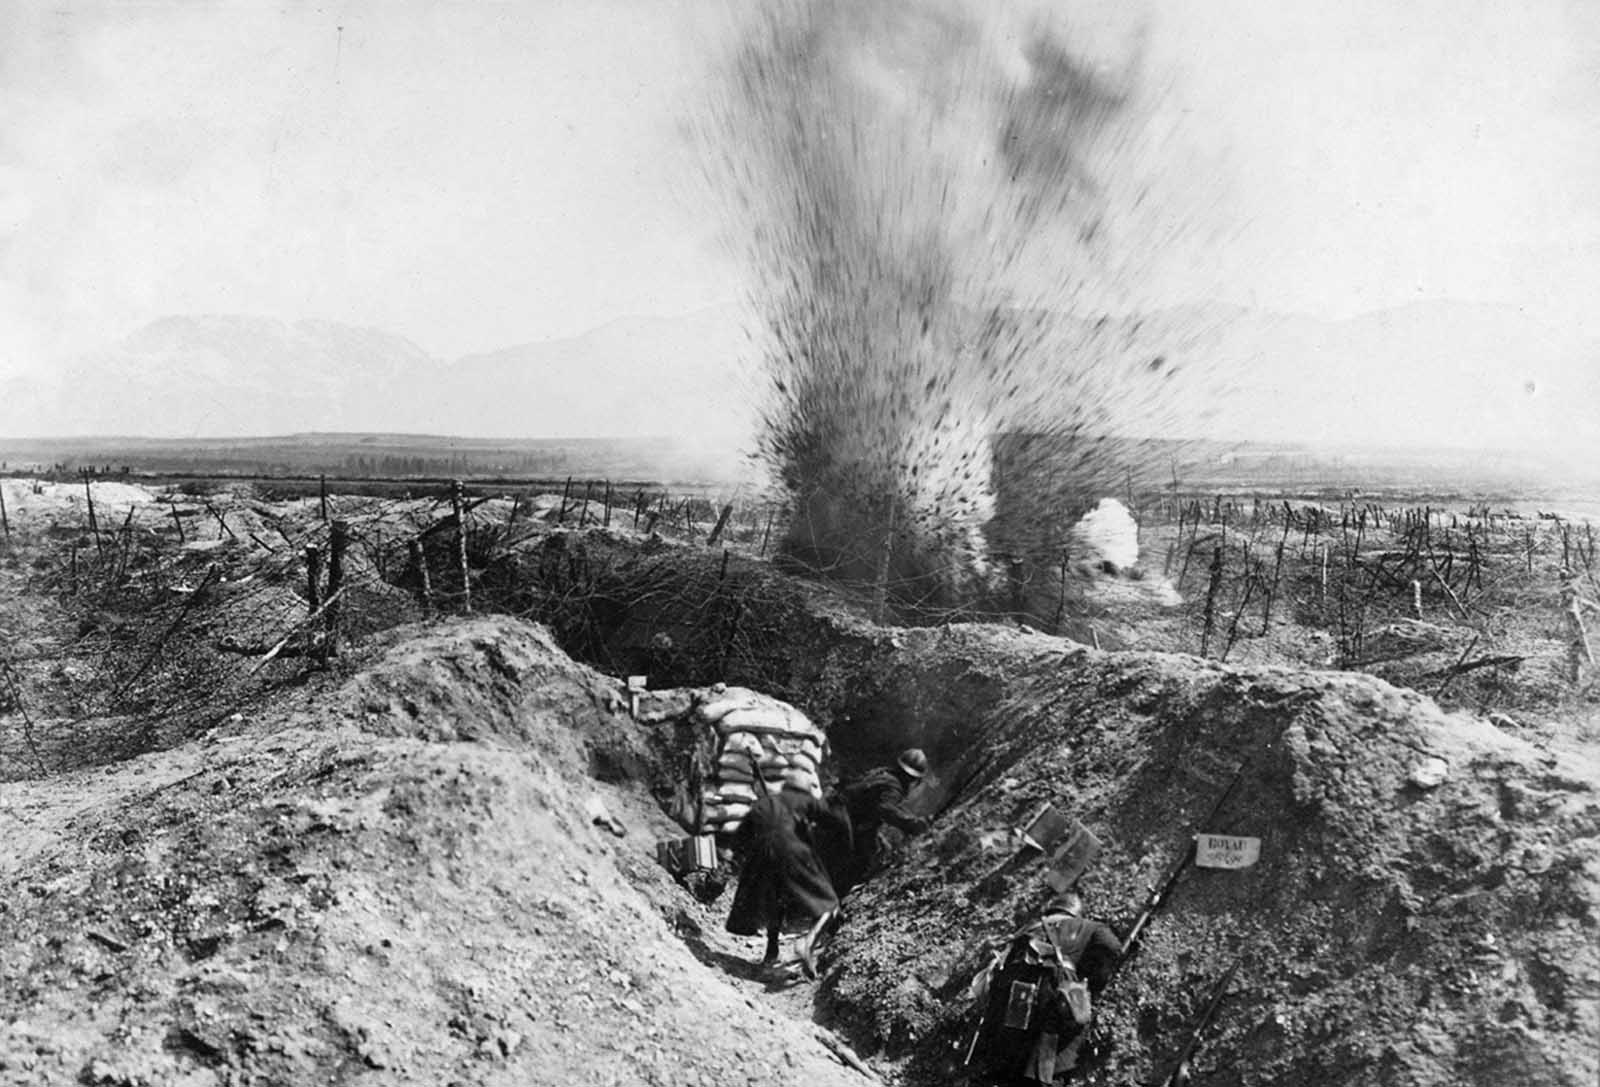 An explosion near trenches dug into the grounds of Fort de la Pompelle, near Reims, France.